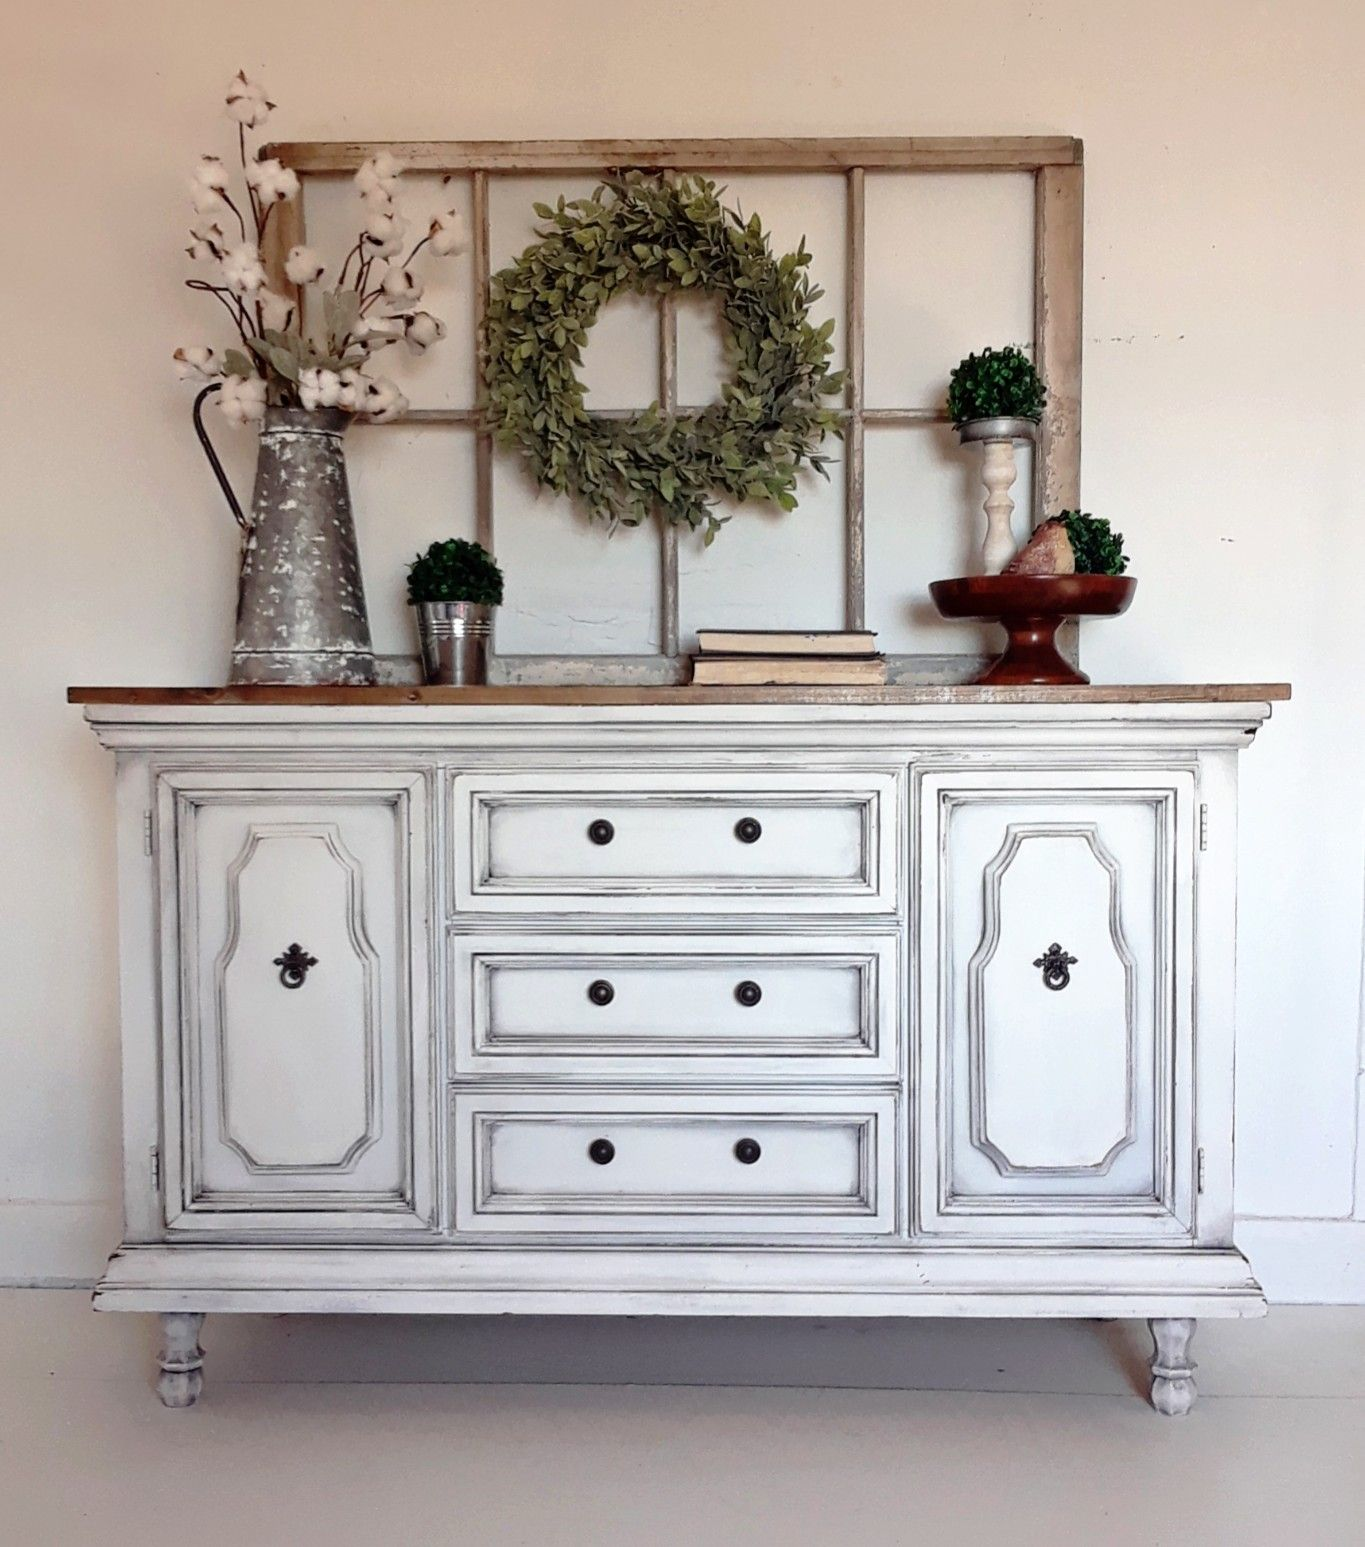 Pin By Angela Lynn Hagood On Refinished Furniture Buffet Table Decor Buffet Decor Repurposed China Cabinet